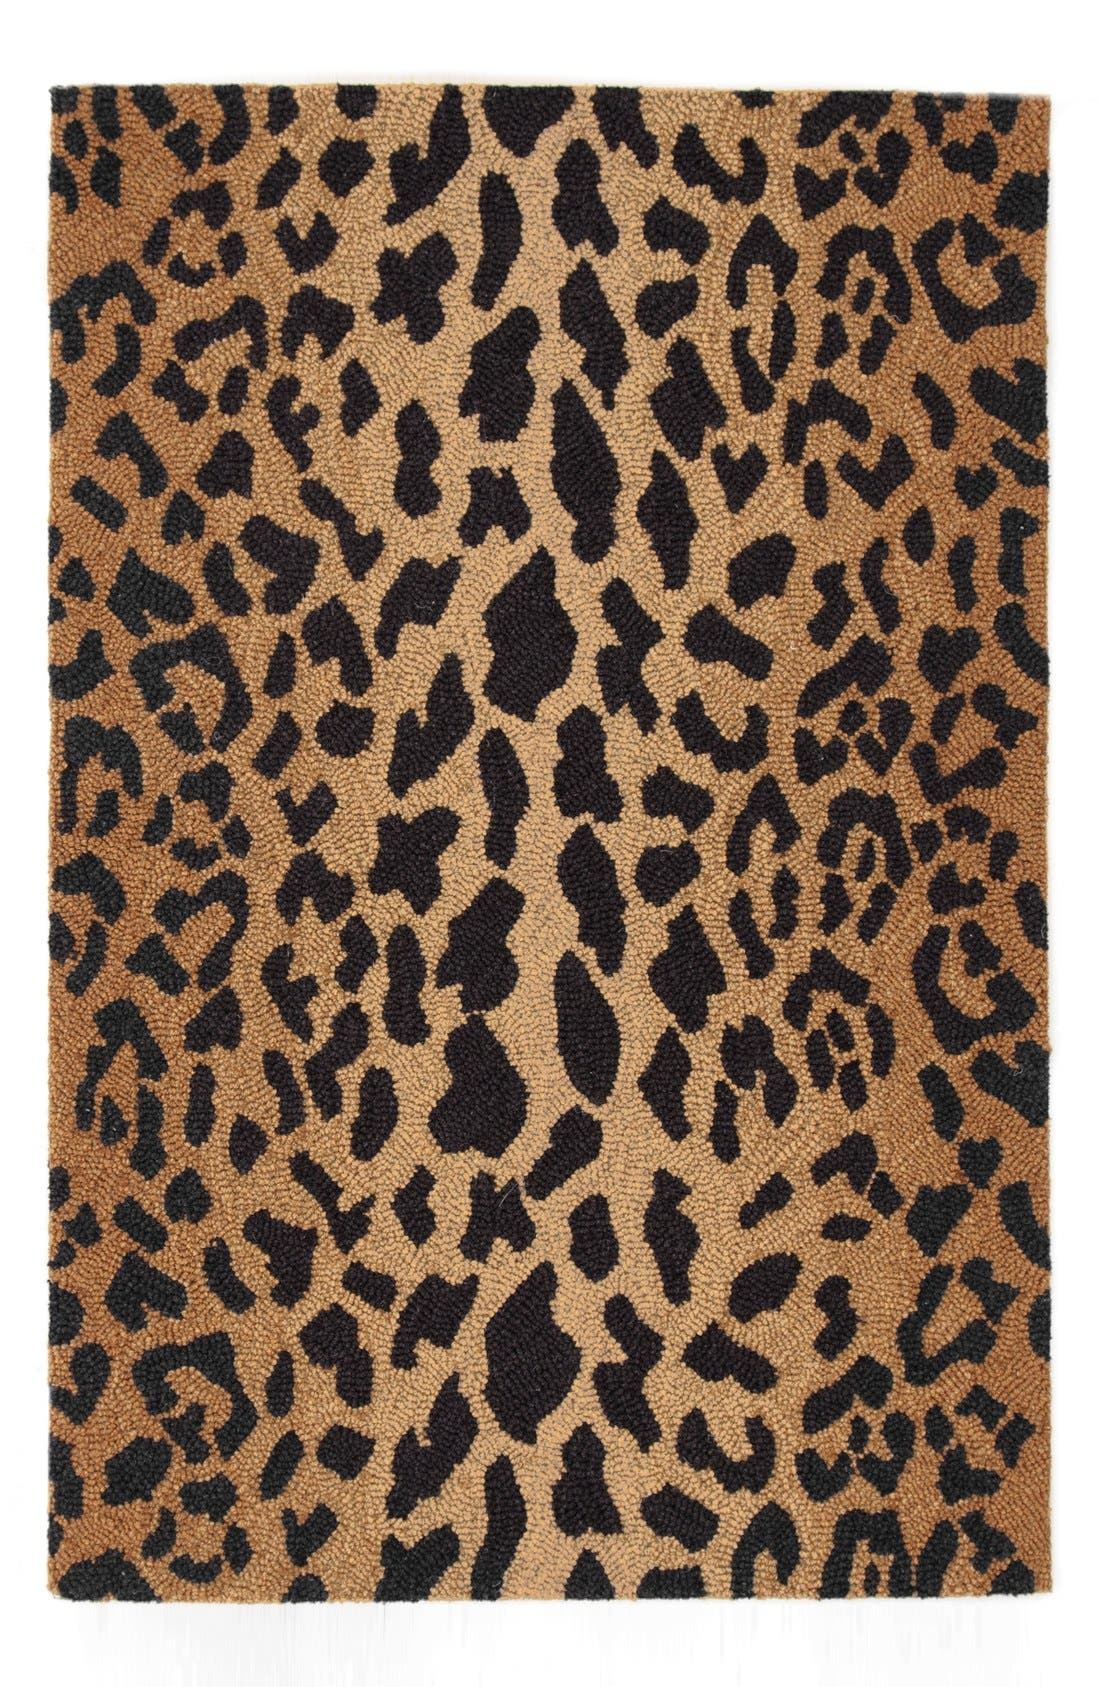 Leopard Print Wool Rug,                         Main,                         color, Brown